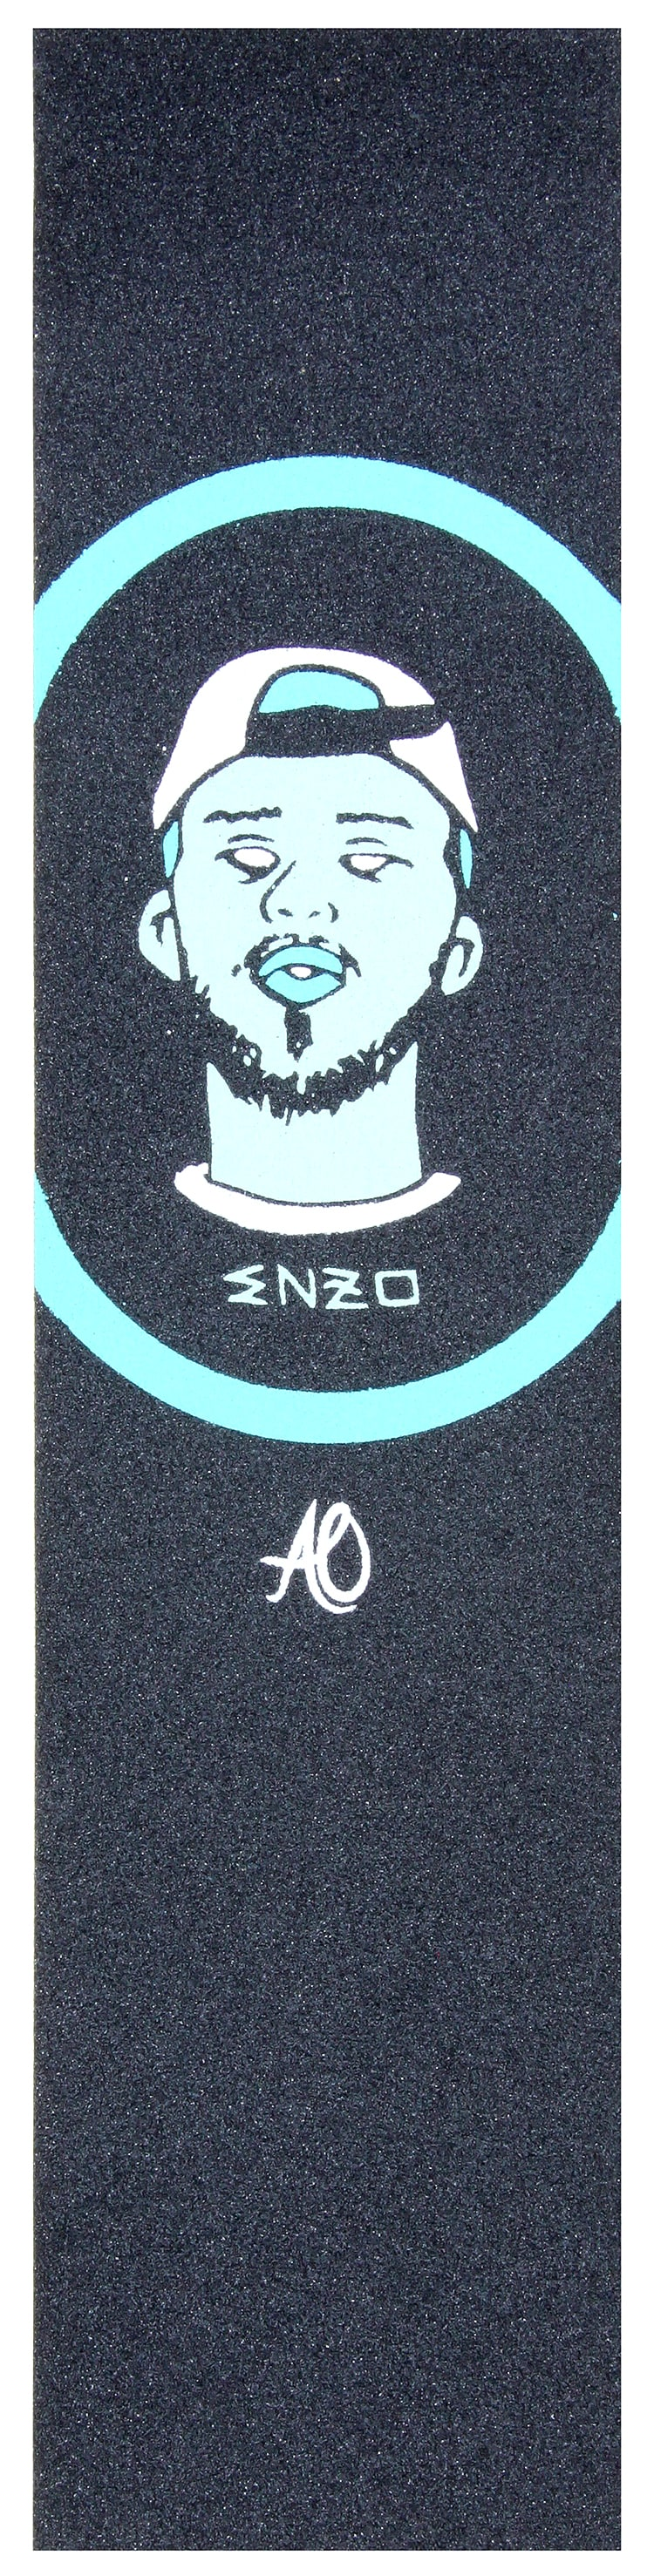 Image of AO Cartoon Grip Tape - Enzo